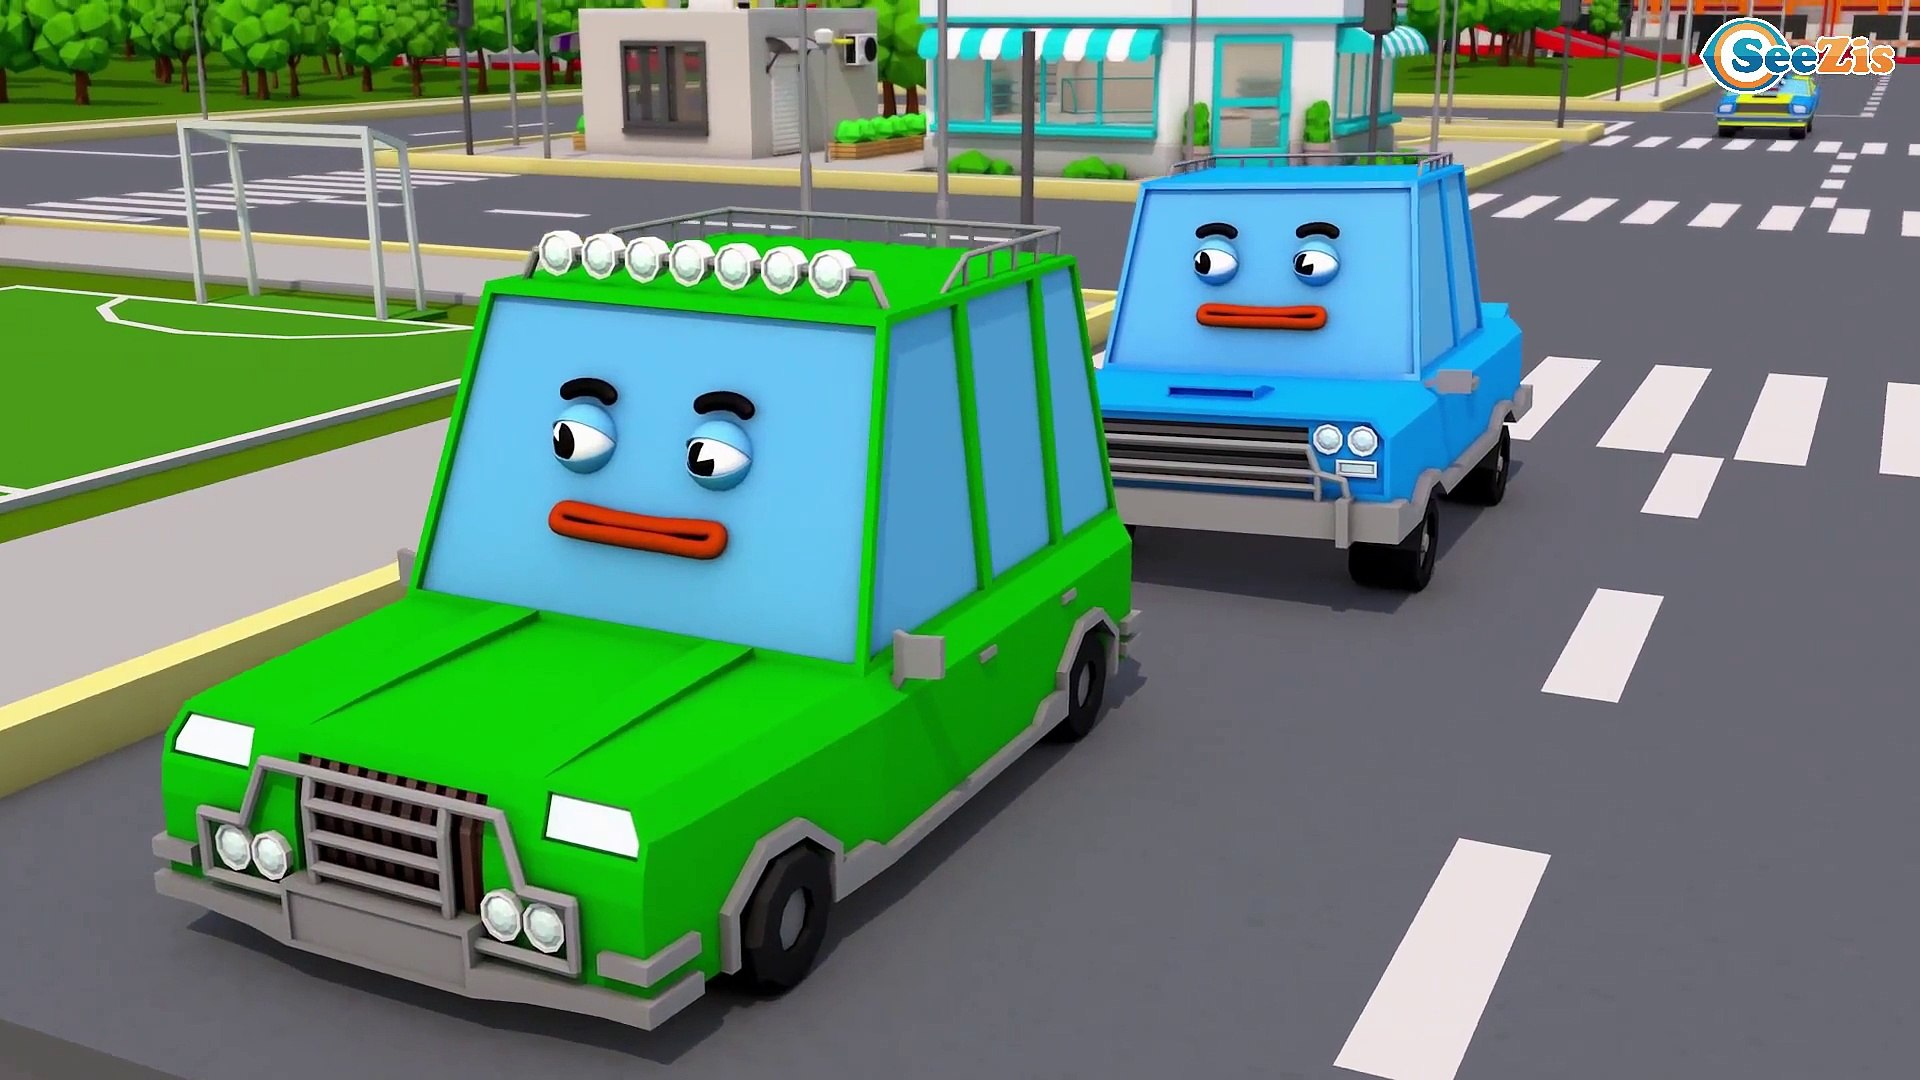 Police car with Racing Cars Chase in Kids Video | 3D Car Cartoon Animation Cars & Truck Stories